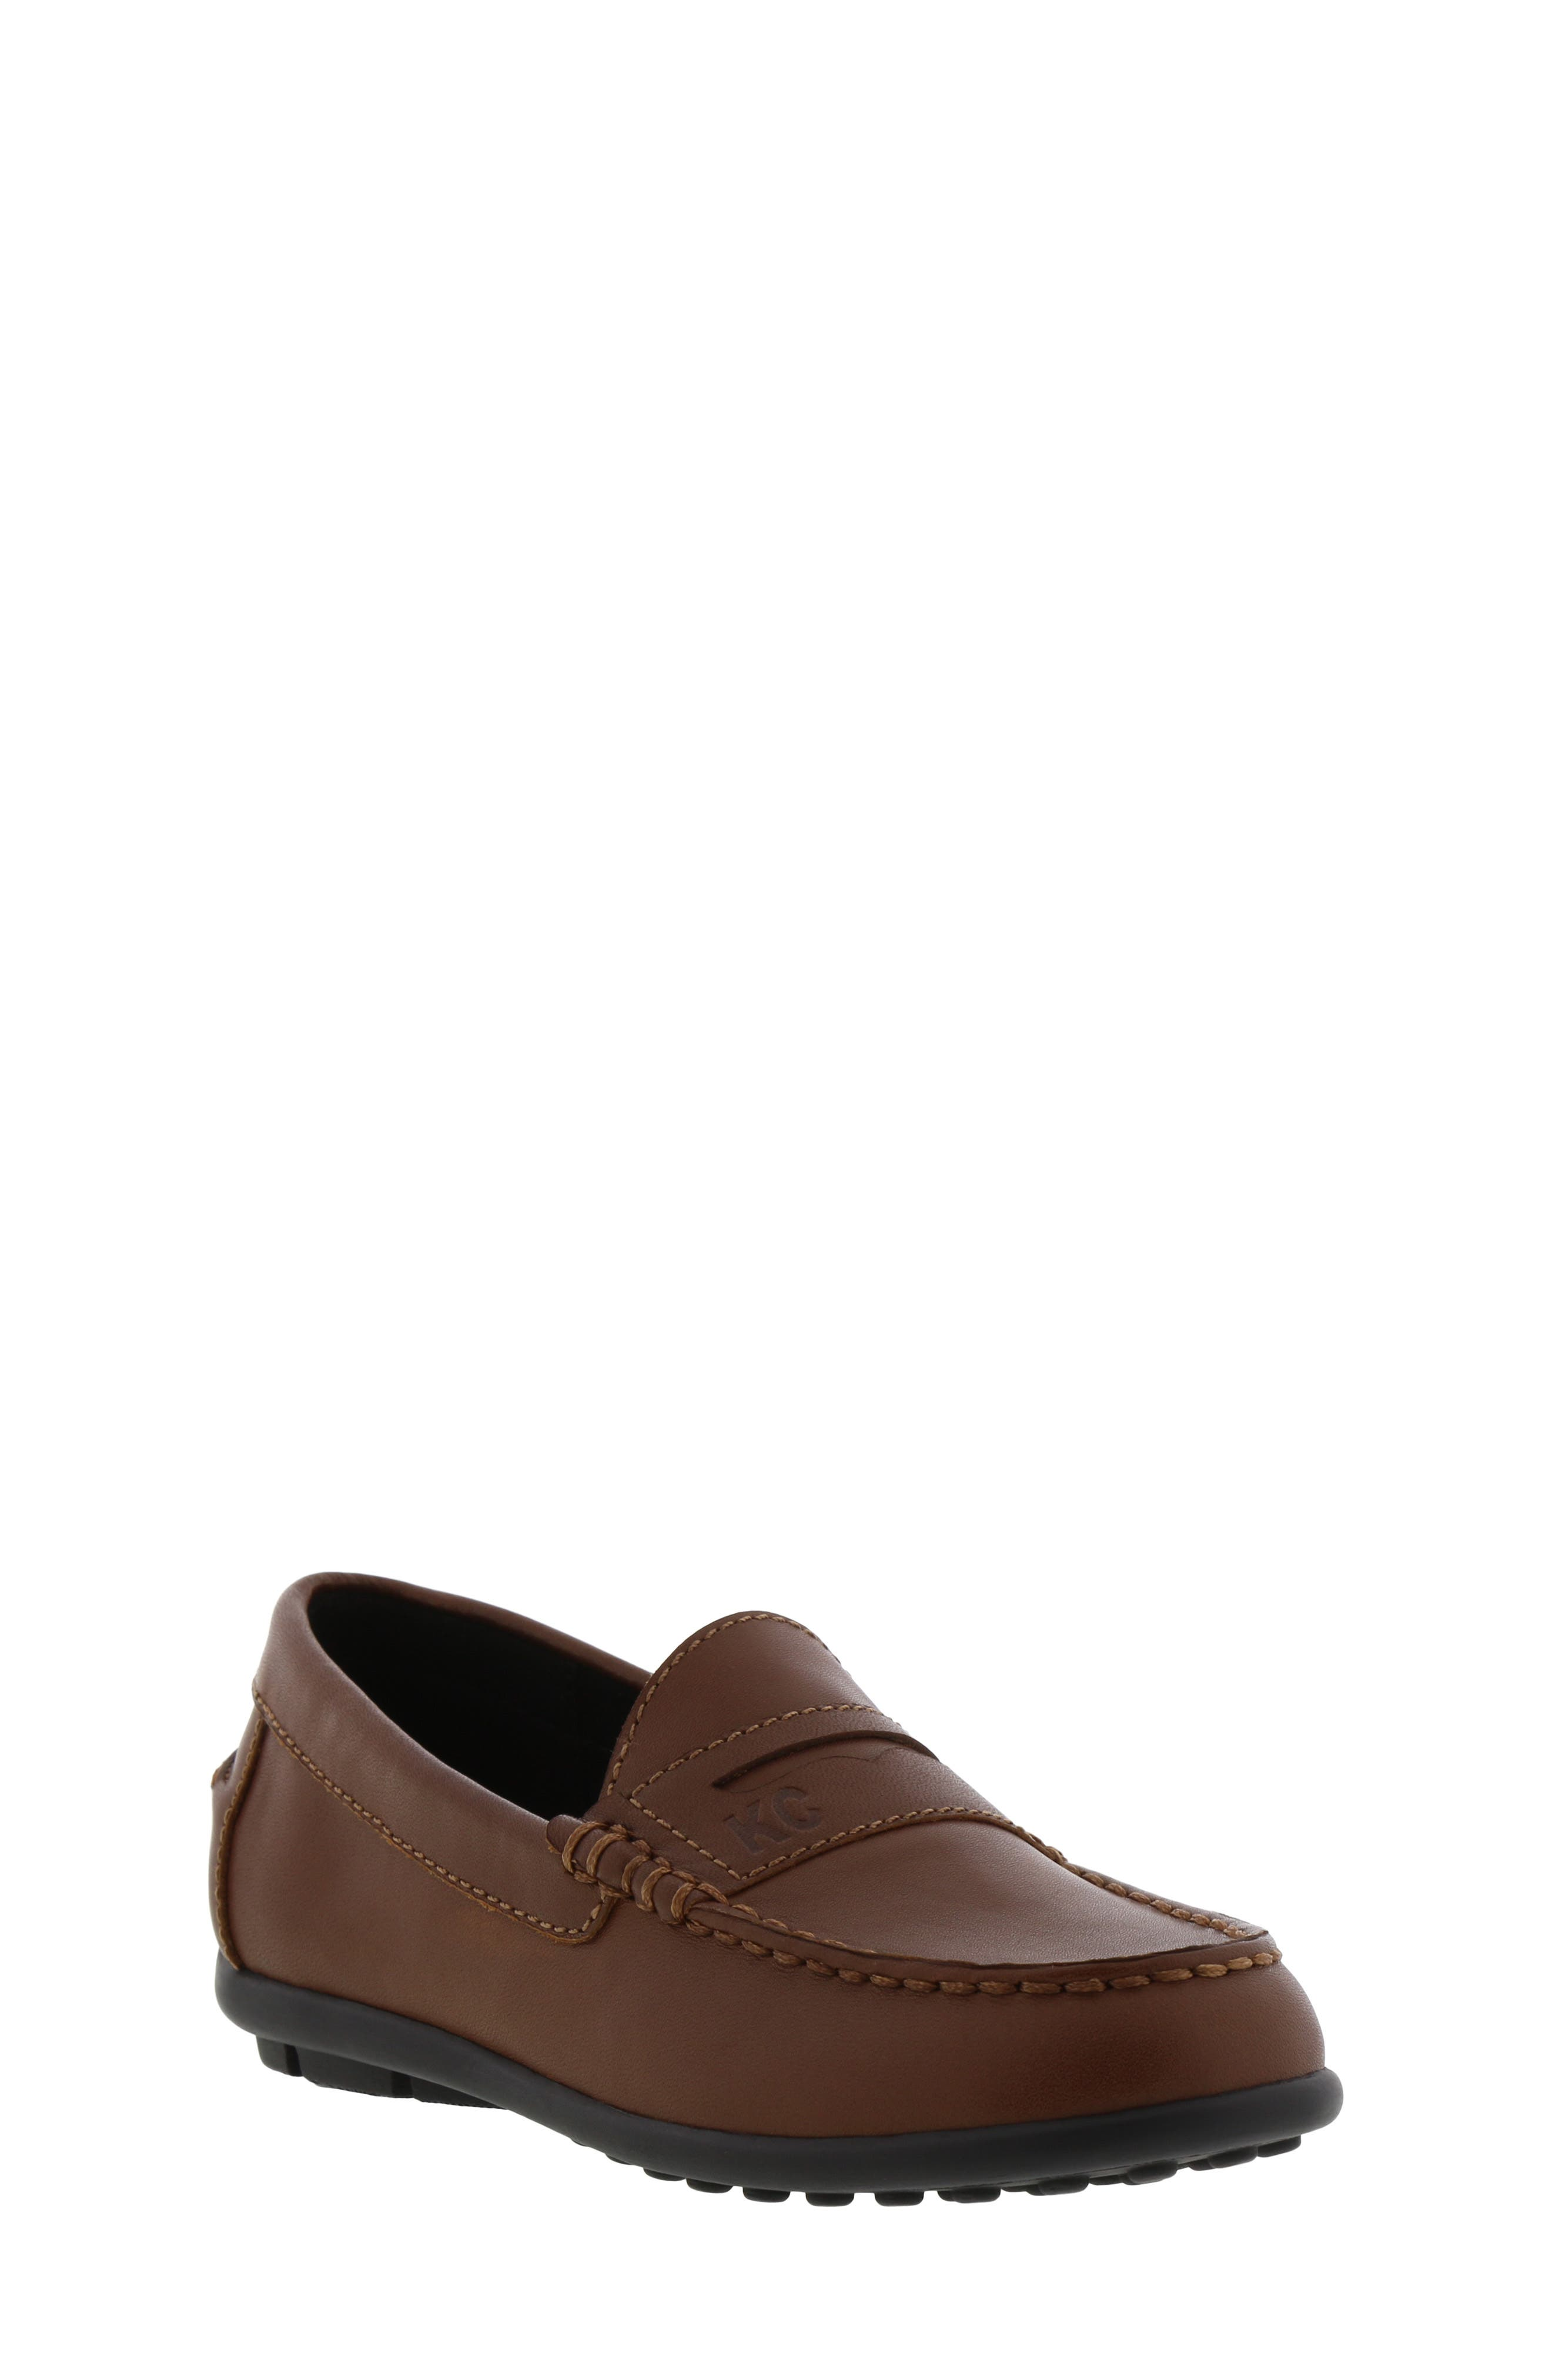 REACTION KENNETH COLE, Helio Gear Loafer, Main thumbnail 1, color, COGNAC